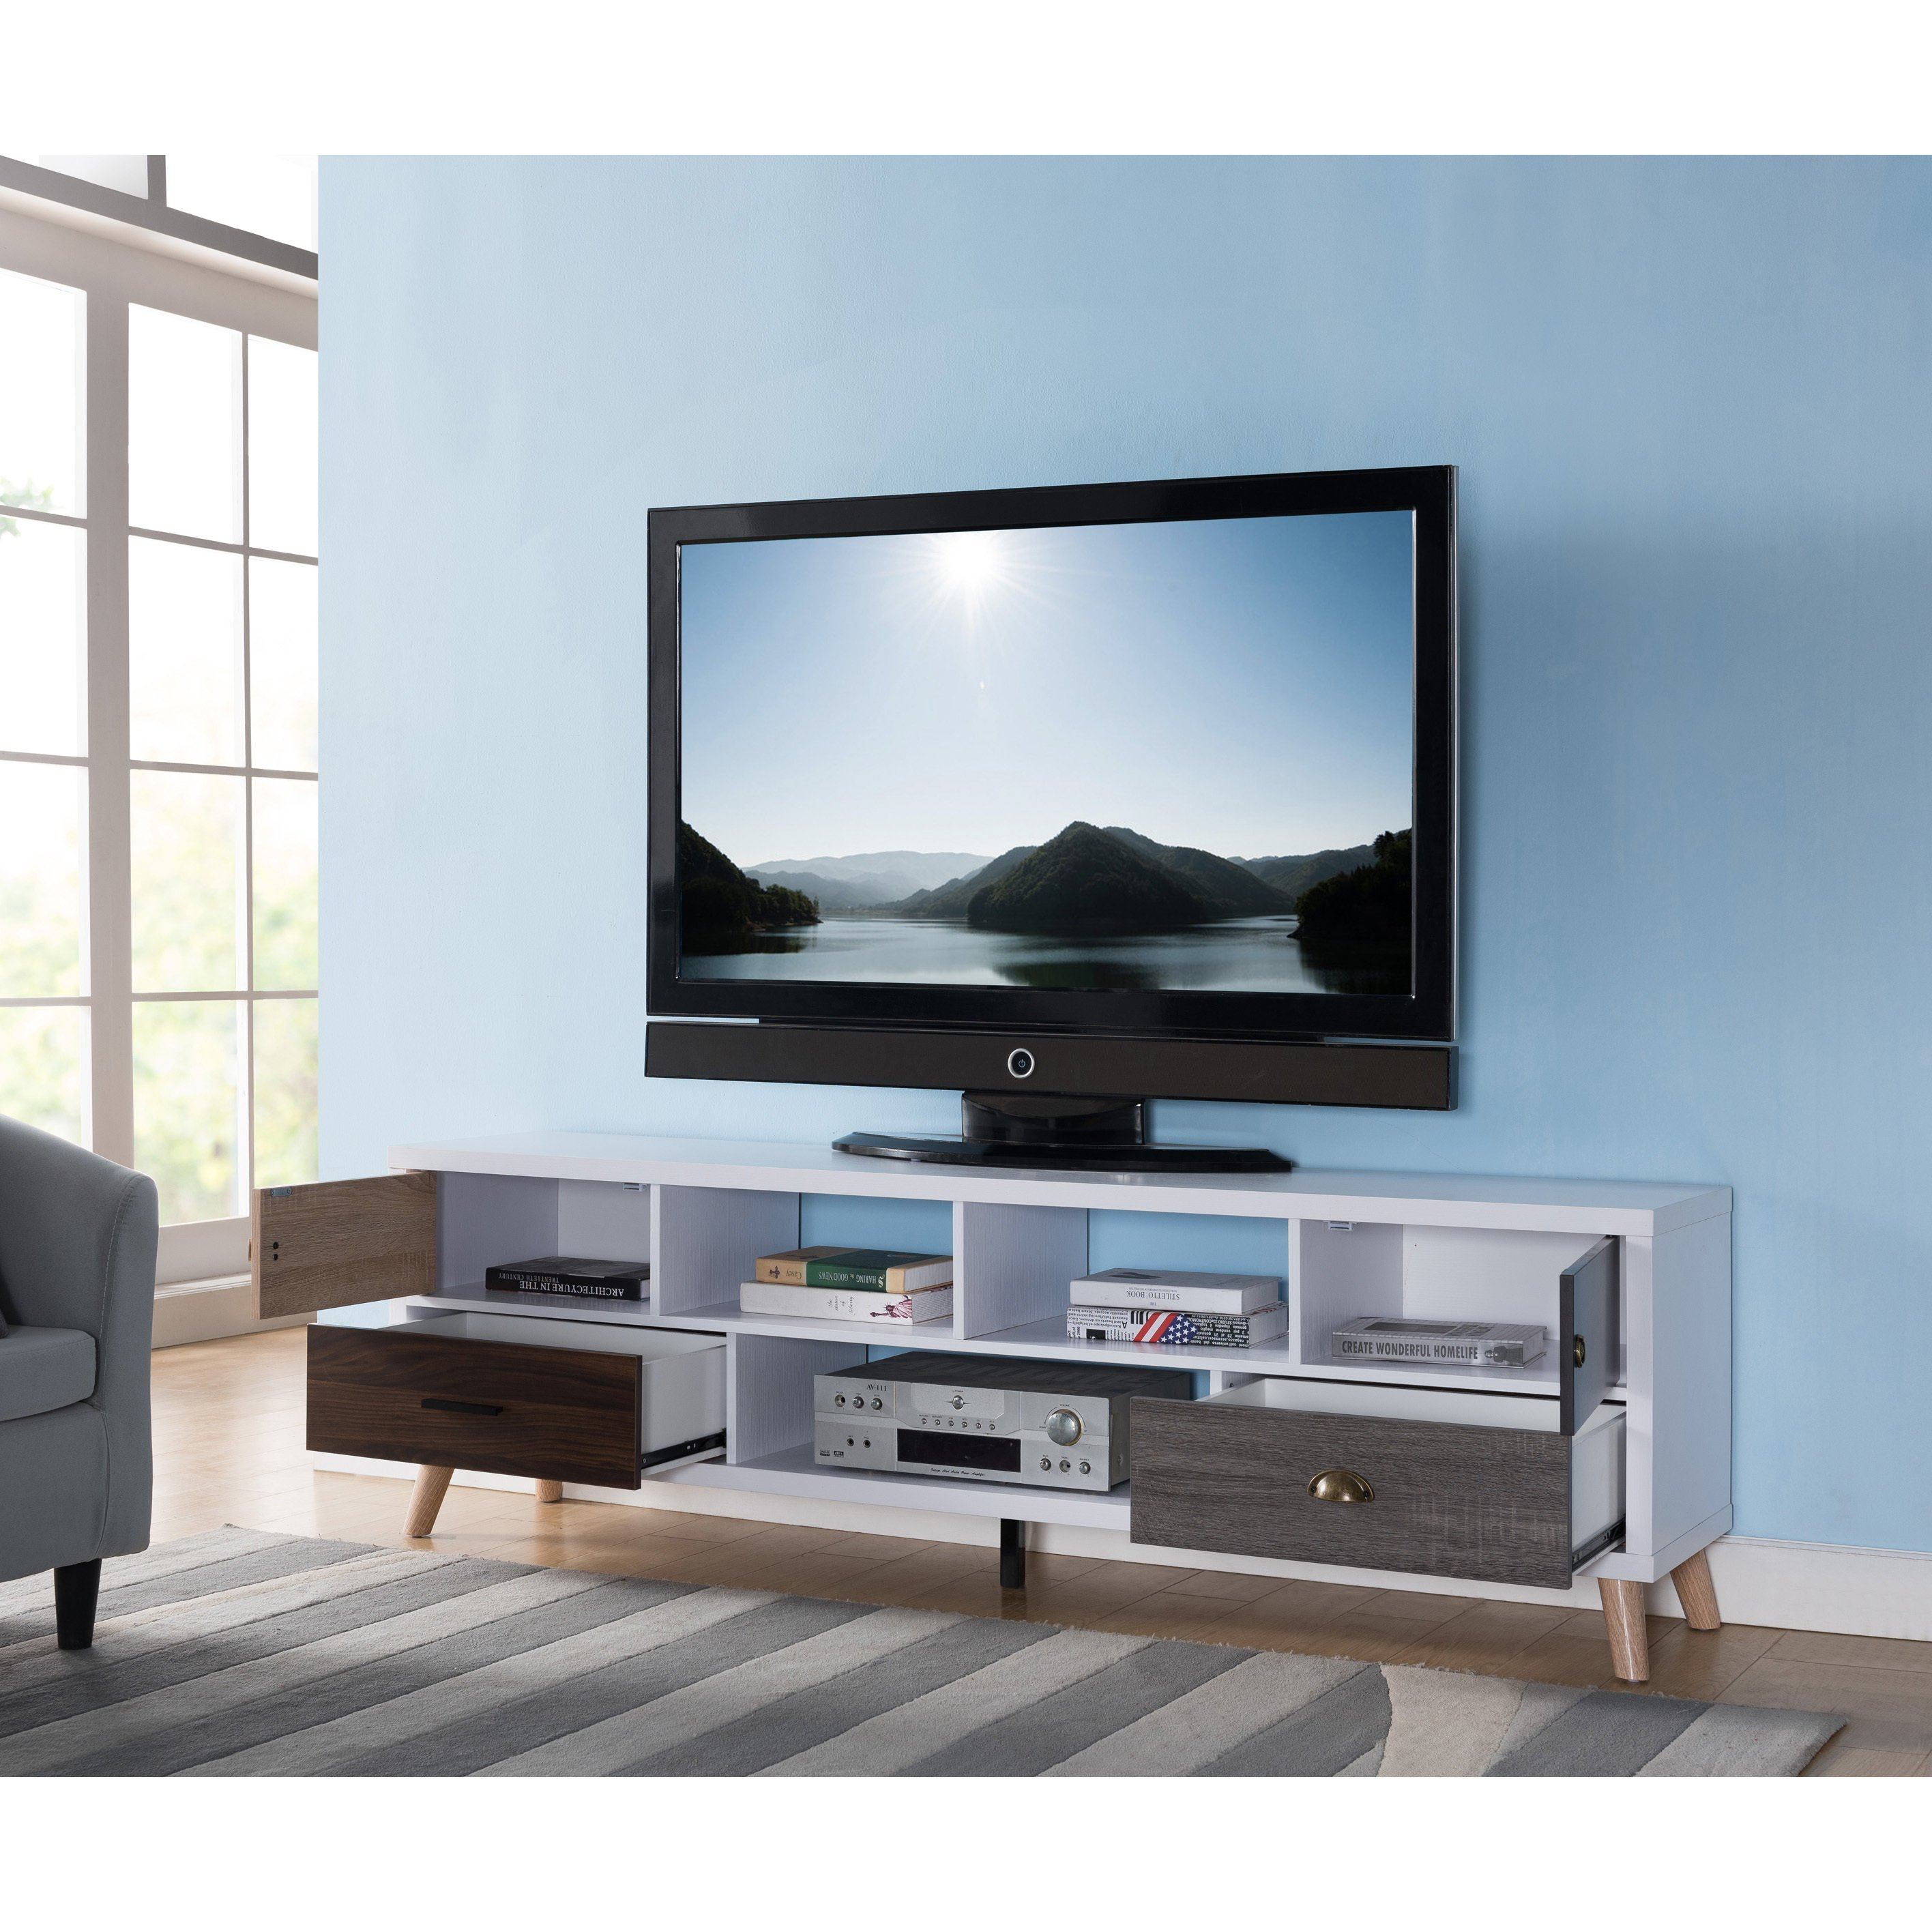 Furniture Of America Kristen Mid-Century Modern Multicolored Storage for Casey Grey 66 Inch Tv Stands (Image 7 of 30)